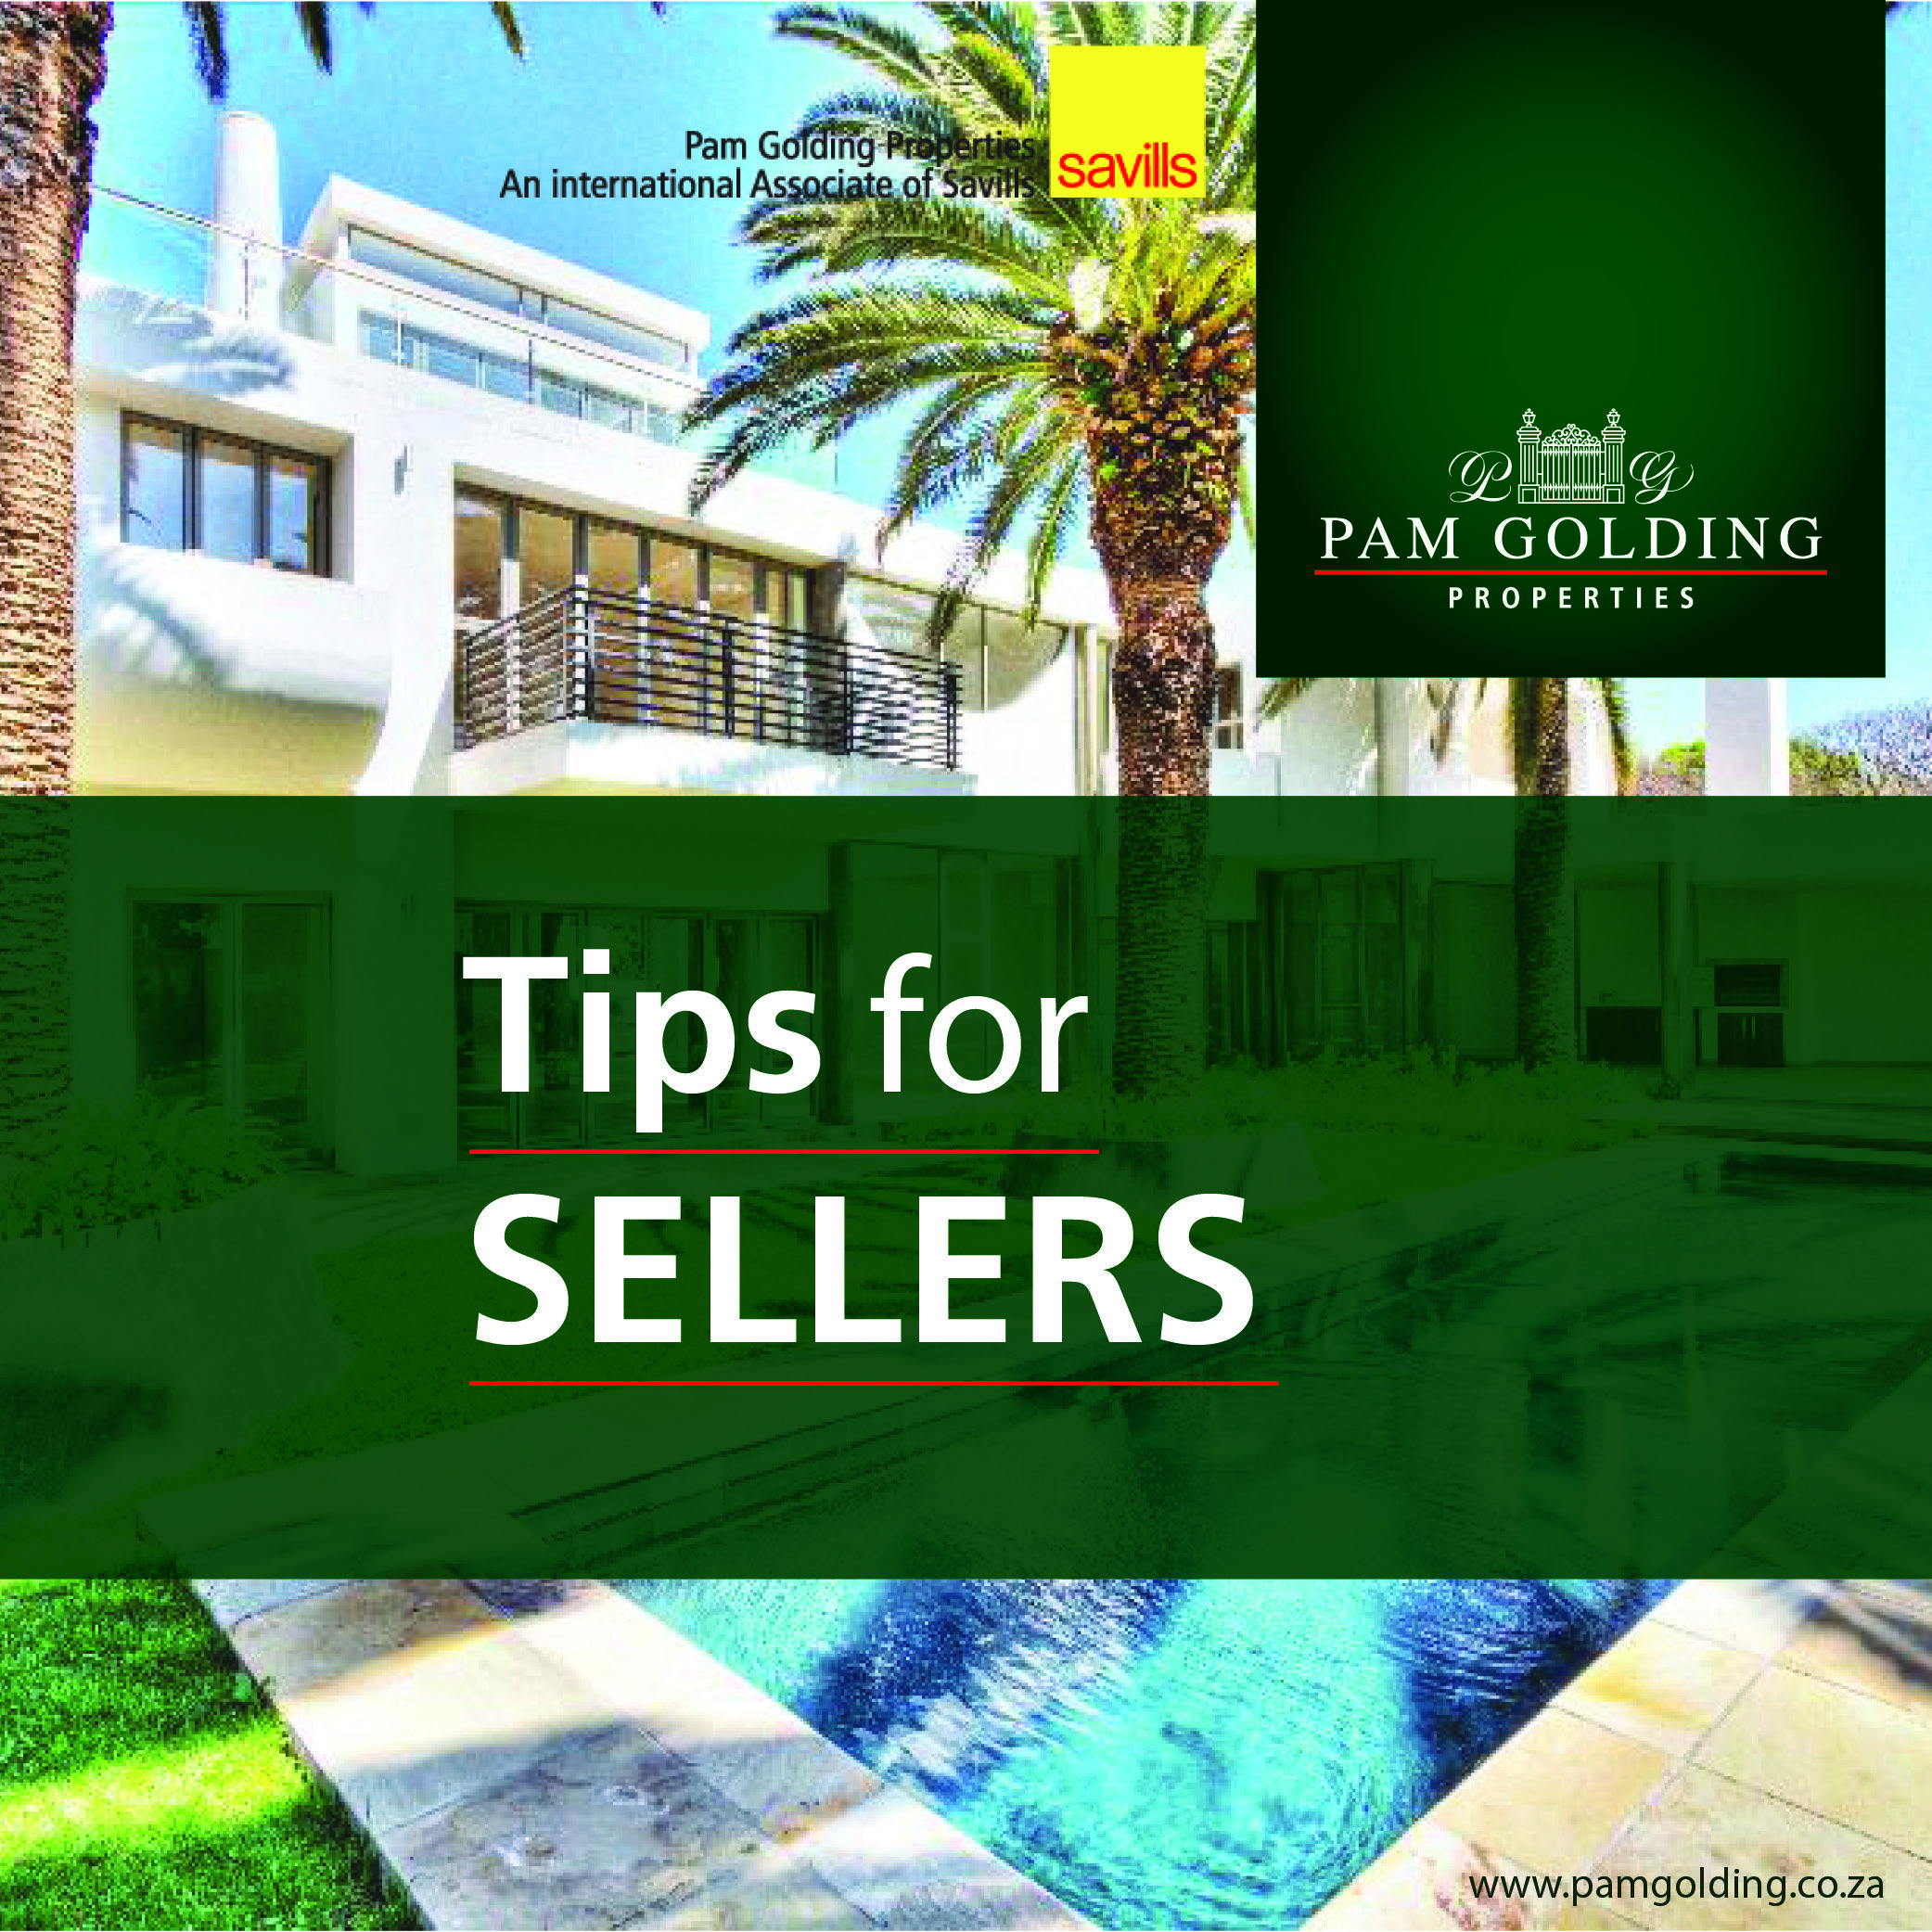 TIPS FOR SELLERS: 1. RESEARCH YOUR AGENT: Choose An Agent